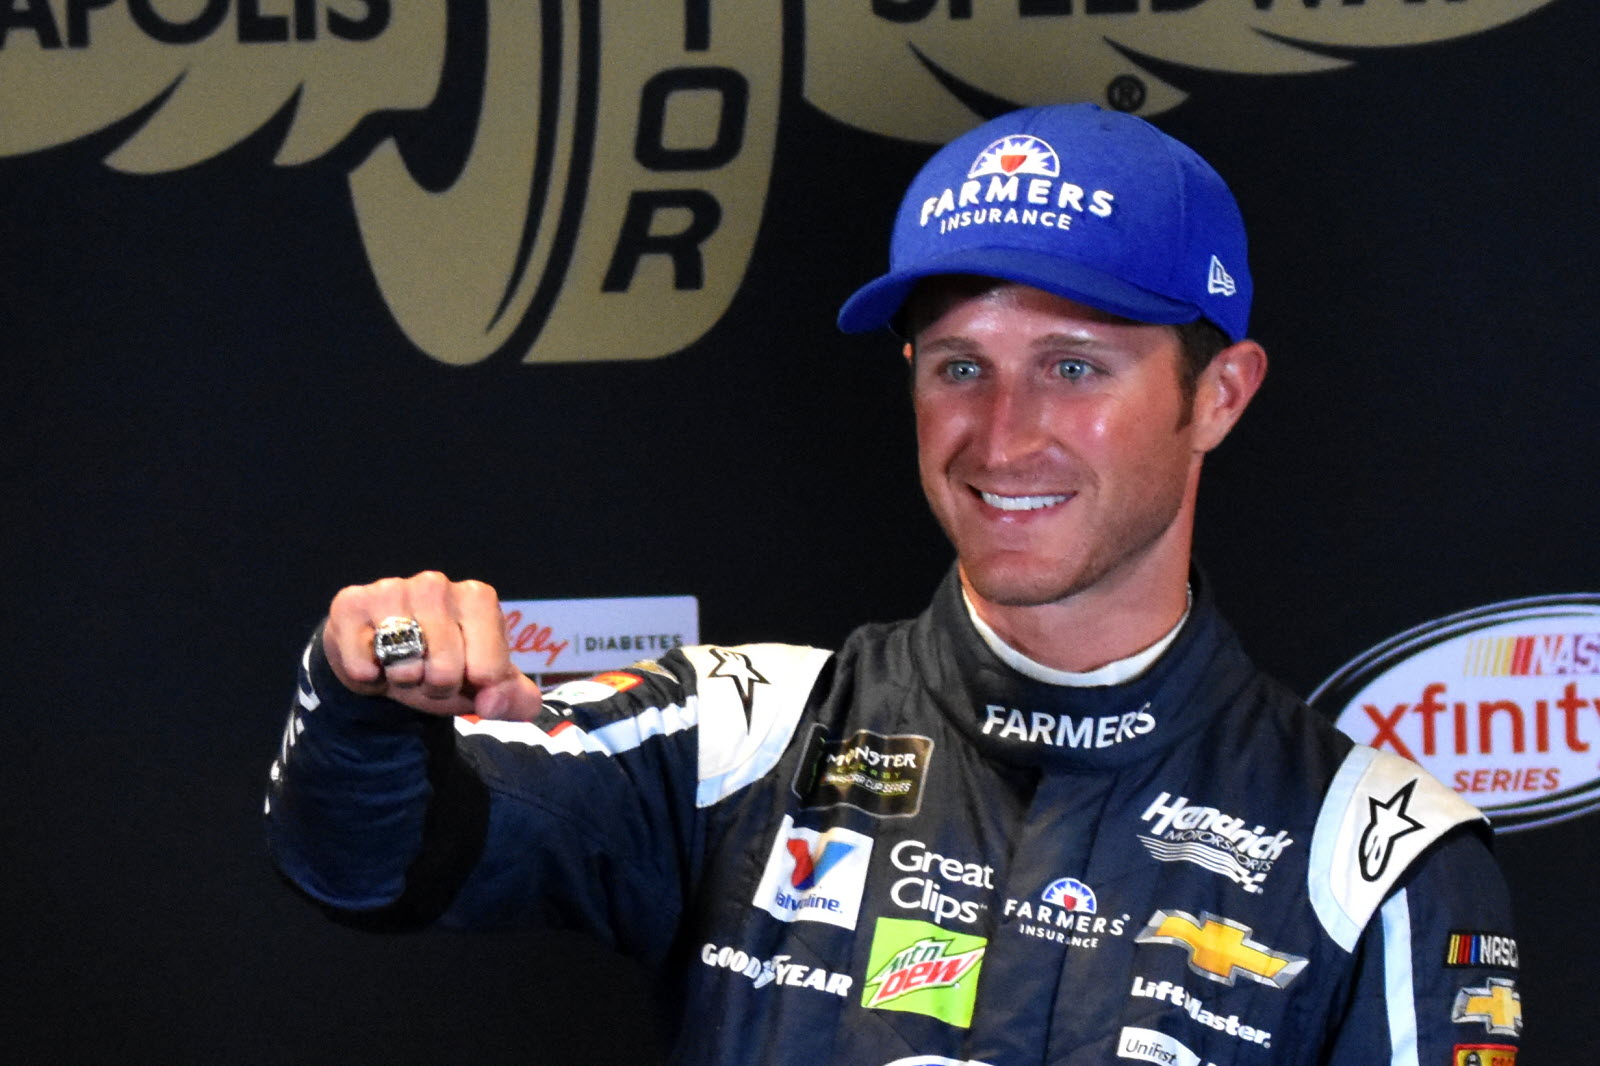 Kasey Kahne shows off his winning ring after the Brickyard 400. [John Wiedemann Photo]